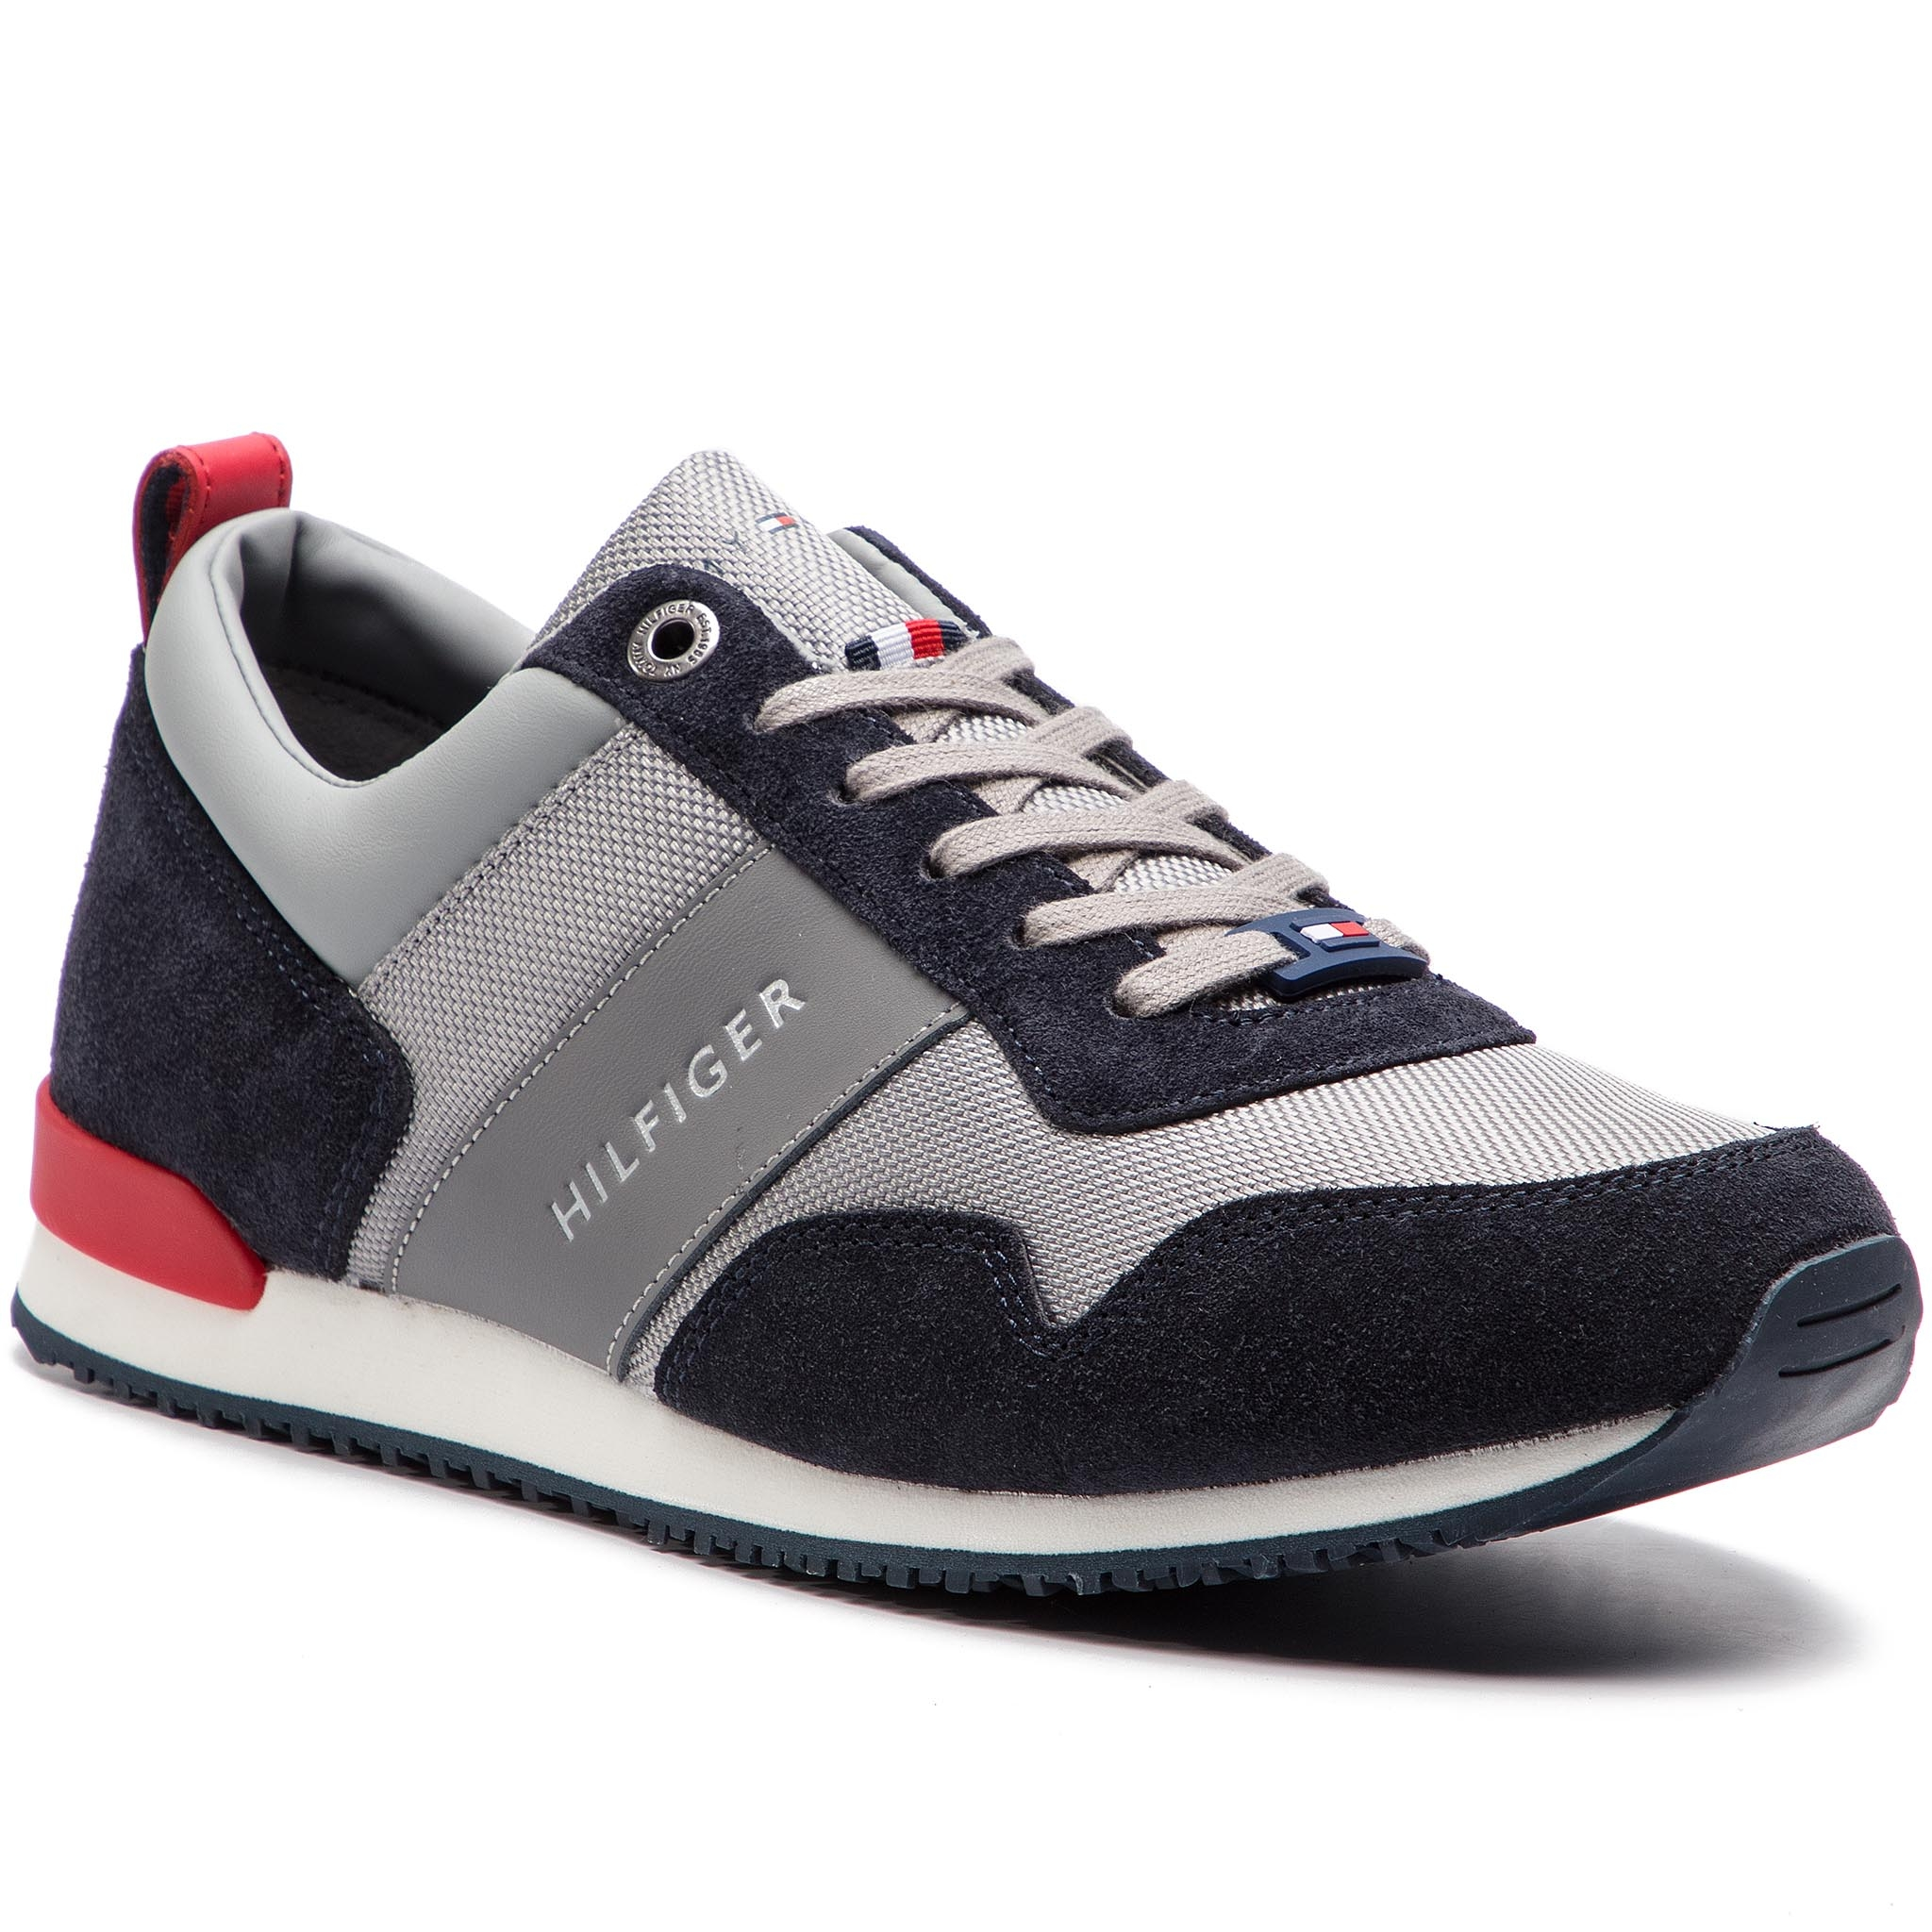 ... Sneakersy TOMMY HILFIGER - Iconic Material Mix Runner FM0FM02042  Midnight Light Grey Tango Red. Nové Sneakersy ... 0b775f5fe12